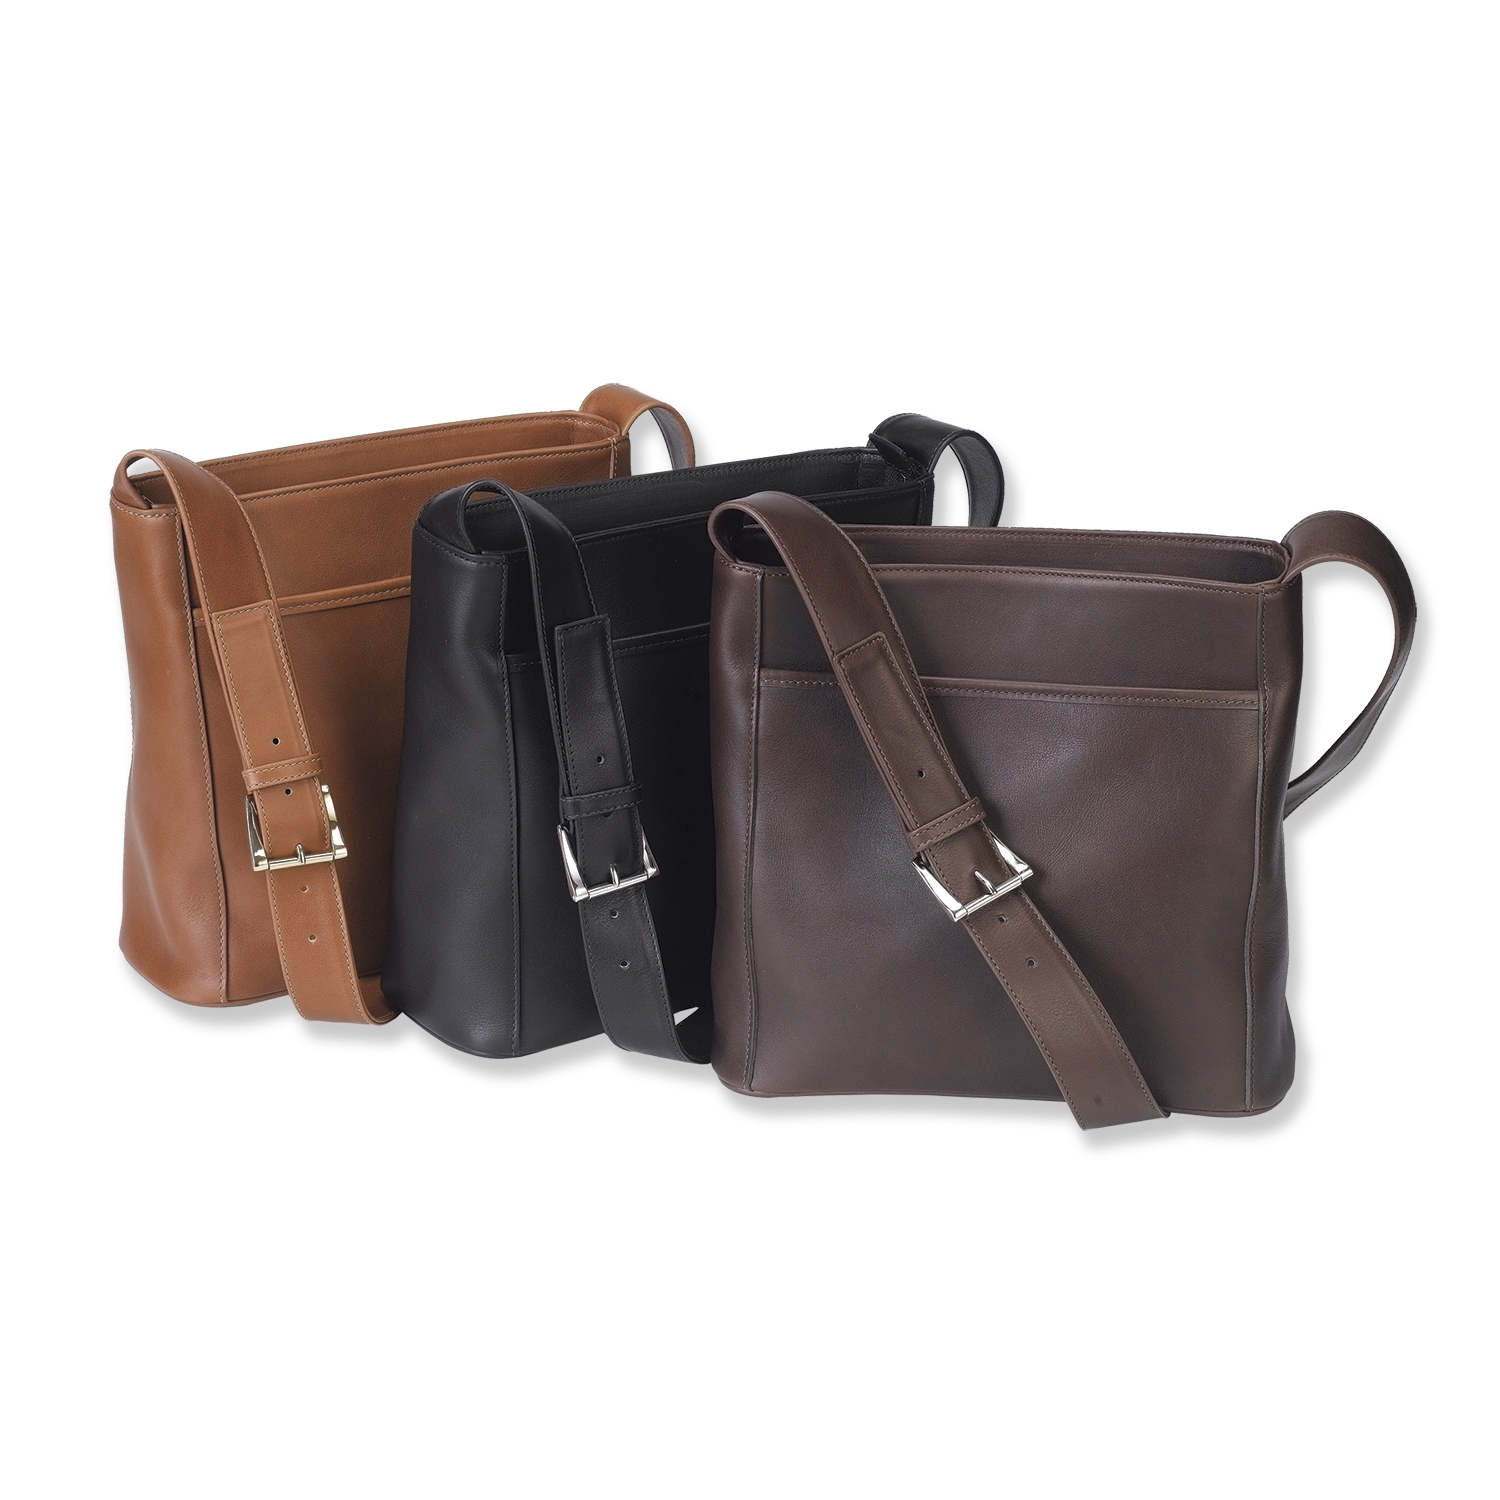 Concealed Carry for Women - Galco Leather Holster Handbags & Purses @ SHOT Show 2012